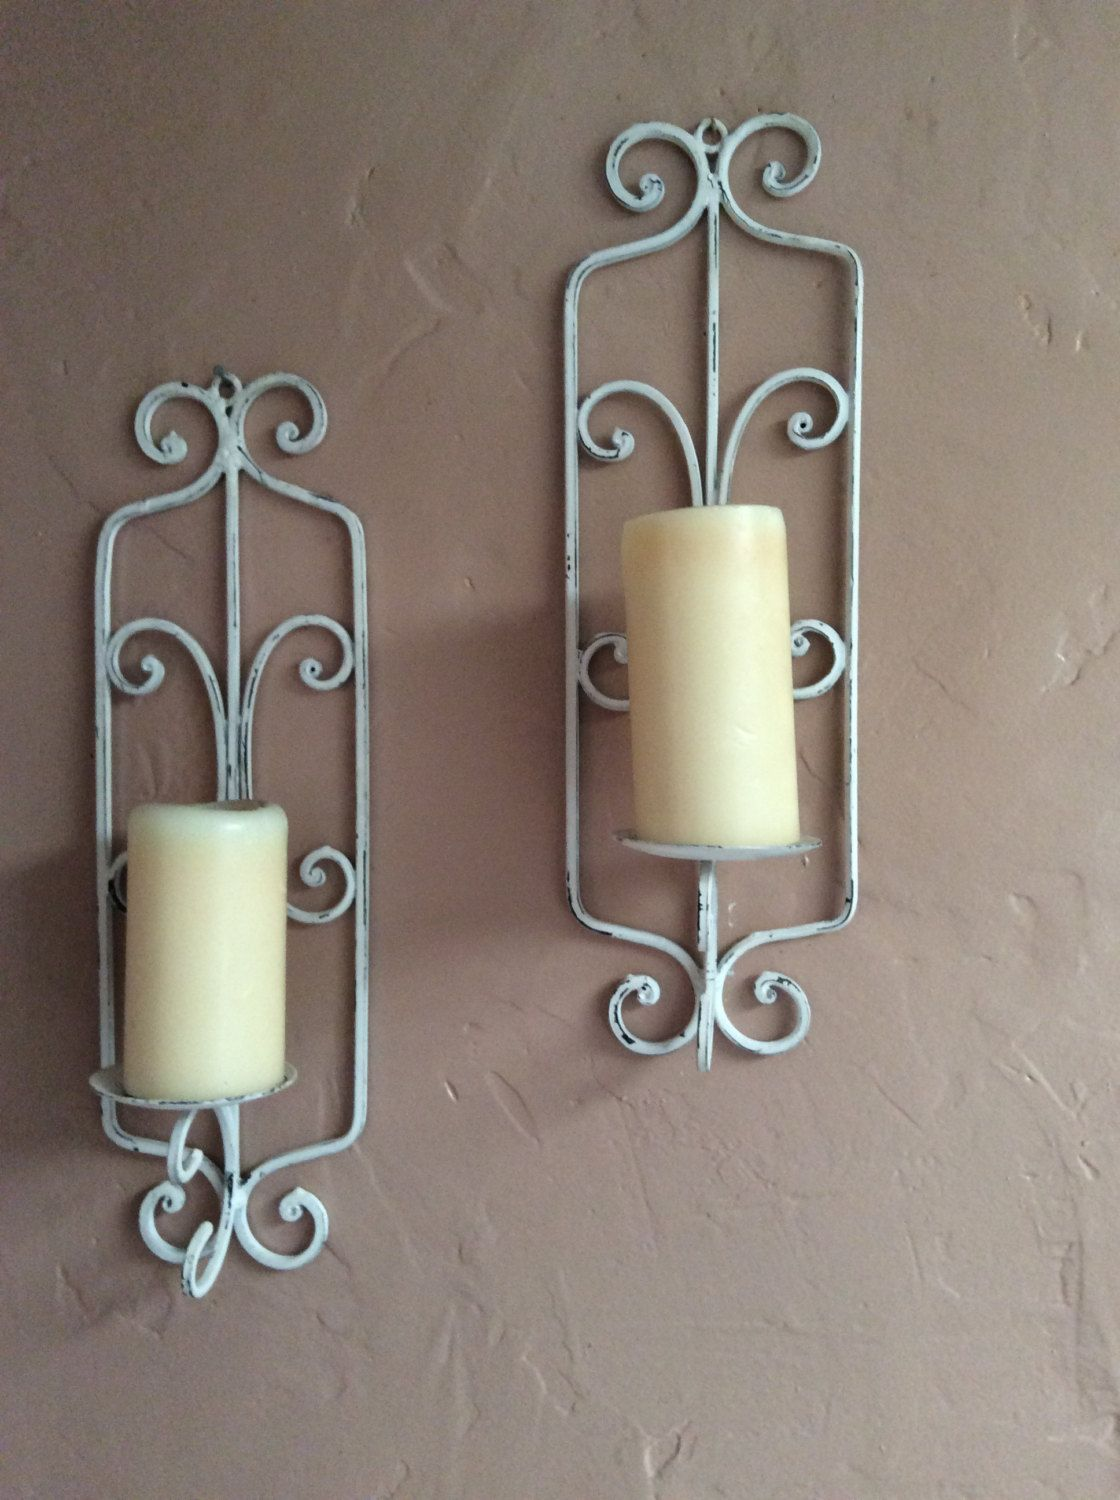 ideas manly hers gh sfor pamono ing design decor wall with together sconces holders image candle pool decorative bed